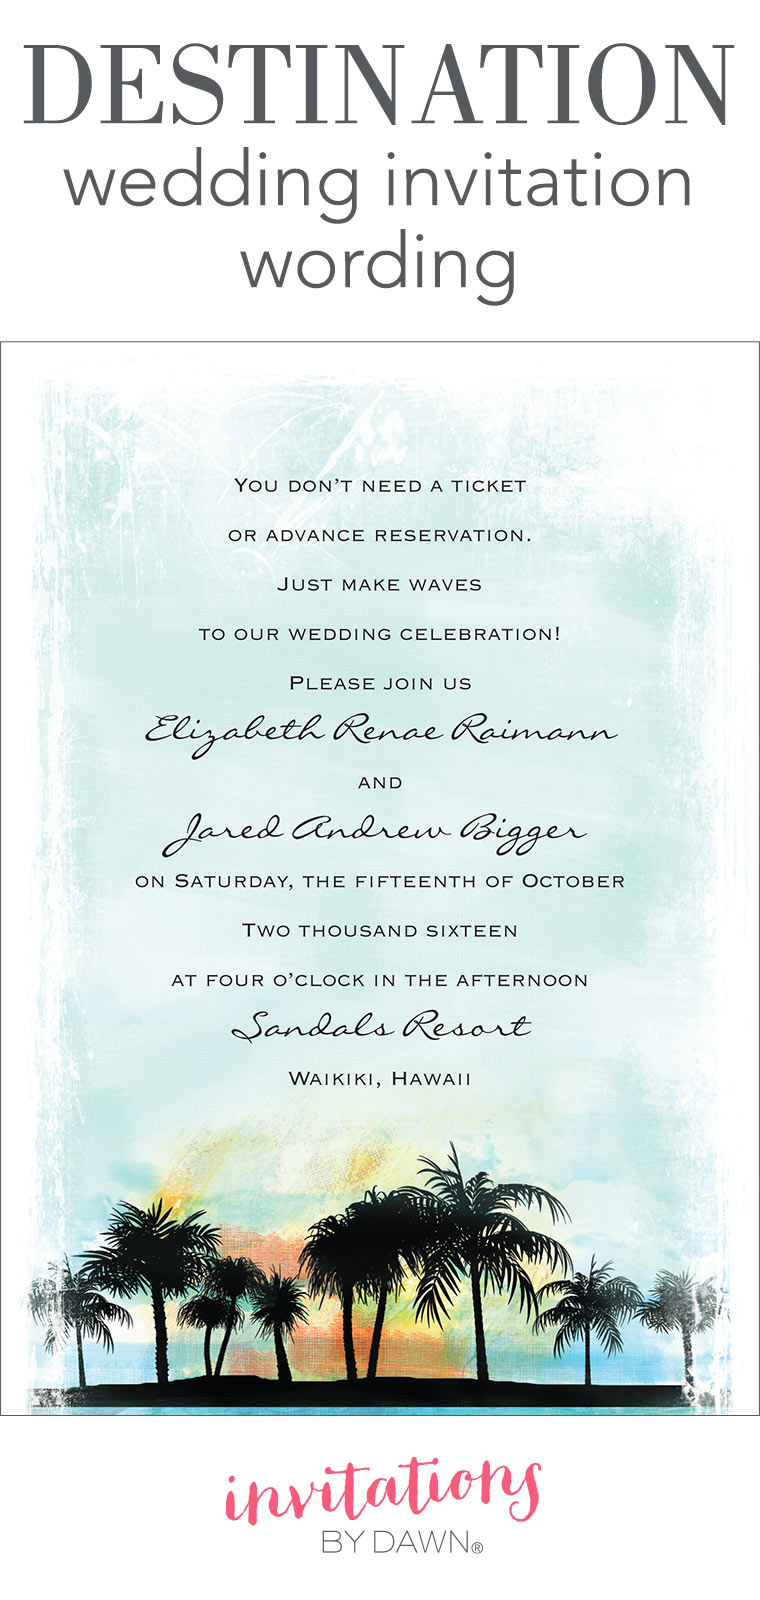 Destination wedding invitation wording invitations by dawn stopboris Gallery